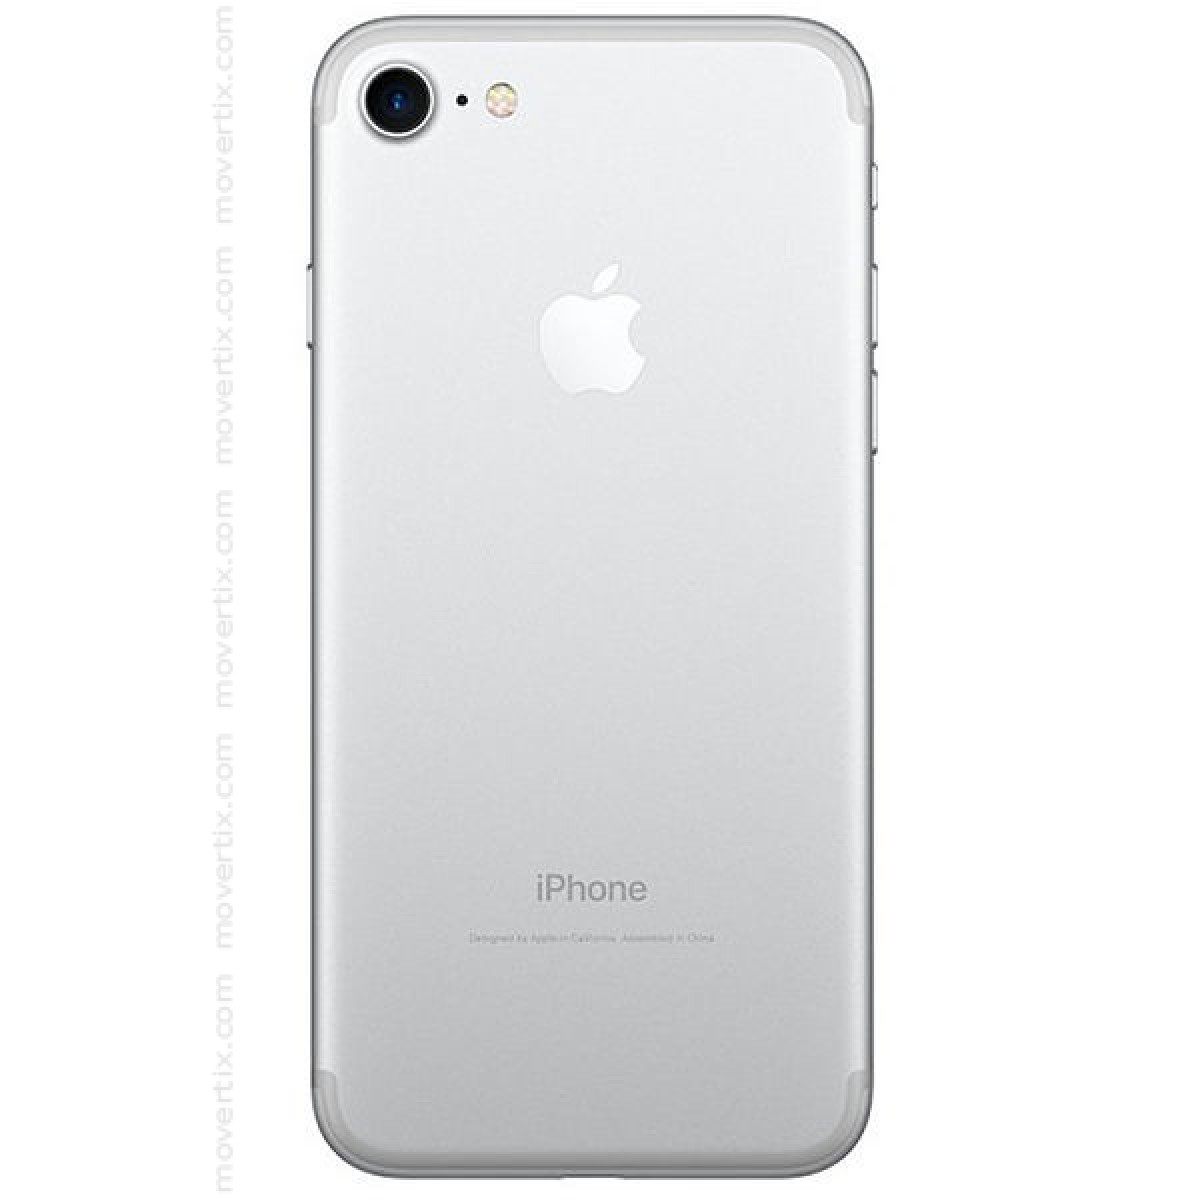 apple iphone 7 silver 128gb 190198068897 movertix. Black Bedroom Furniture Sets. Home Design Ideas